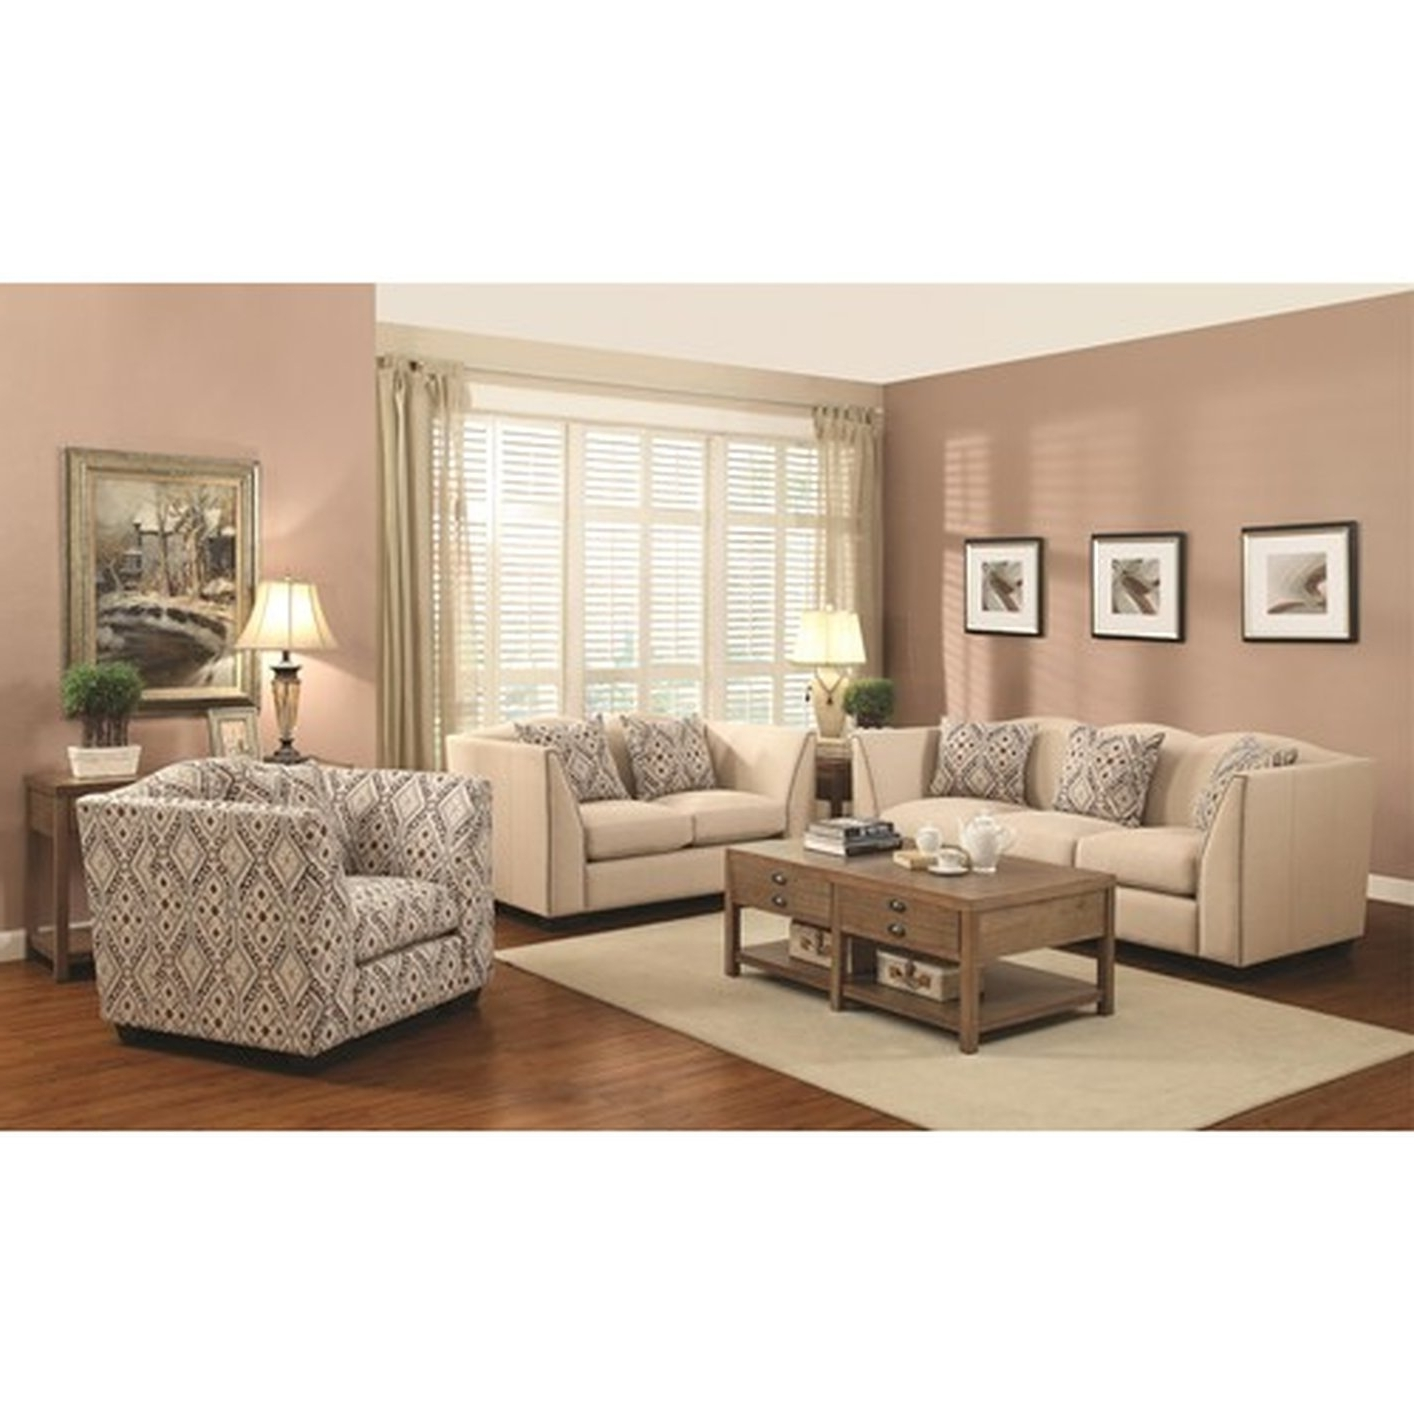 Most Popular Sofa And Accent Chair Sets Inside Siana Beige Fabric Accent Chair – Steal A Sofa Furniture Outlet (View 12 of 20)